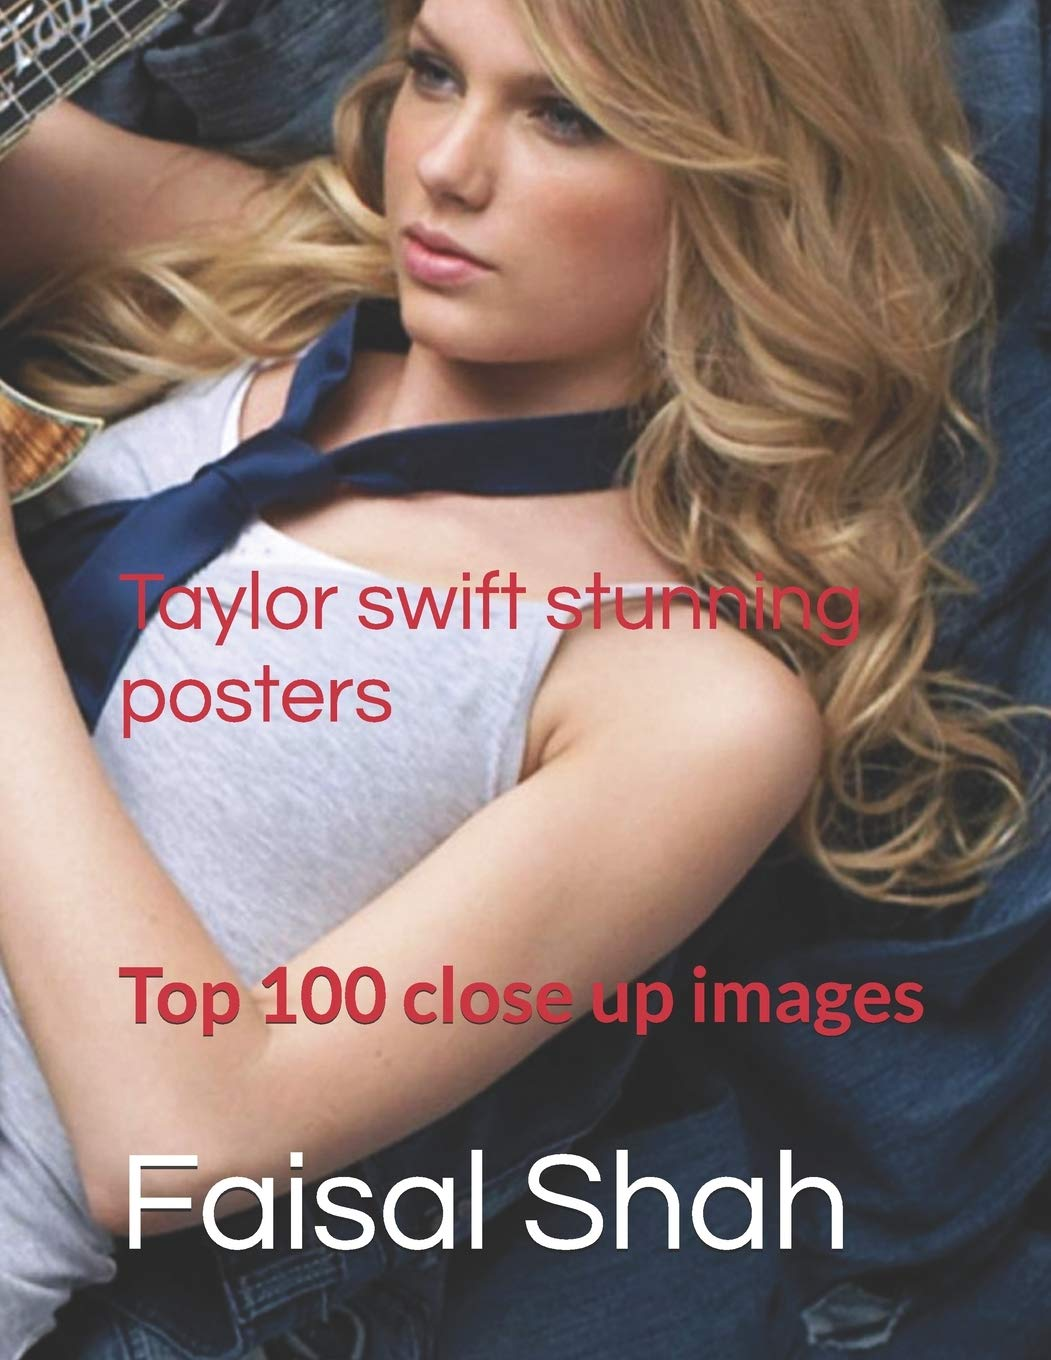 Taylor Swift Stunning Posters Top 100 Close Up Images Shah Faisal 9798690605445 Amazon Com Books